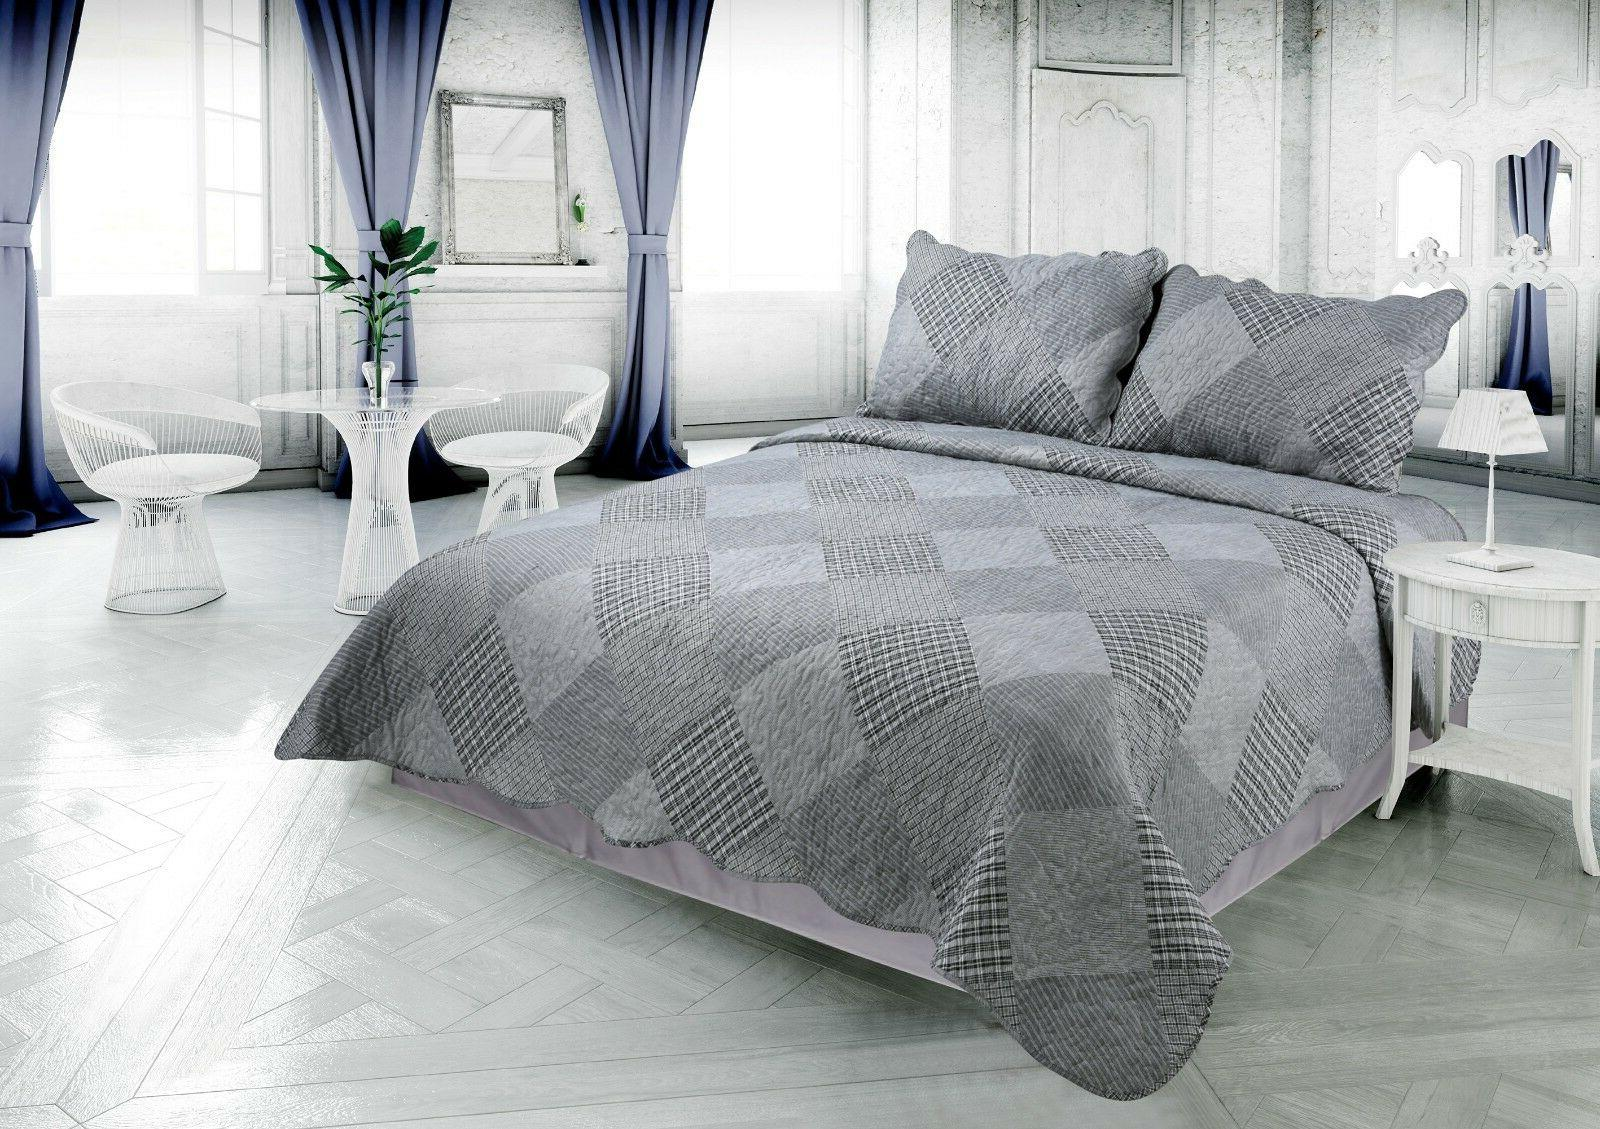 printed reversible soft bedding comfort bedspread coverlet